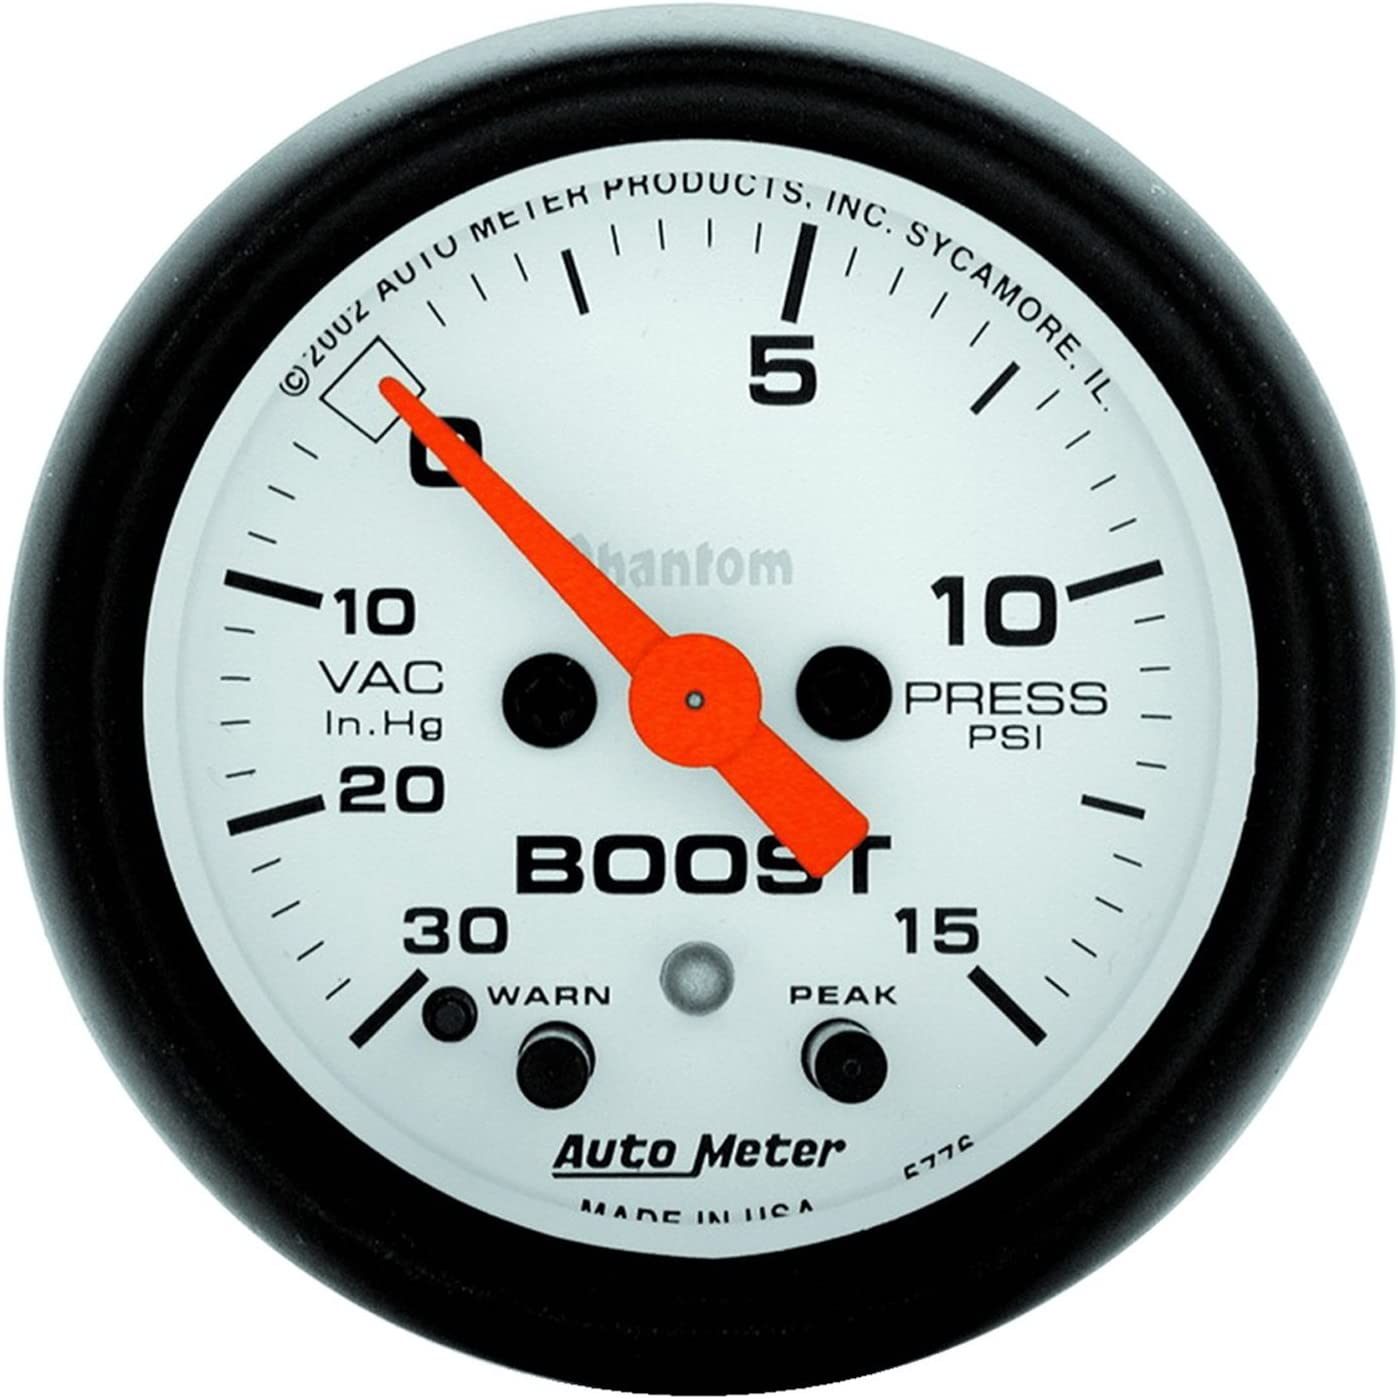 Auto Meter 5776 Phantom Electric Boost Vacuum in. Tampa Mall Popular products 2.3125 Gauge